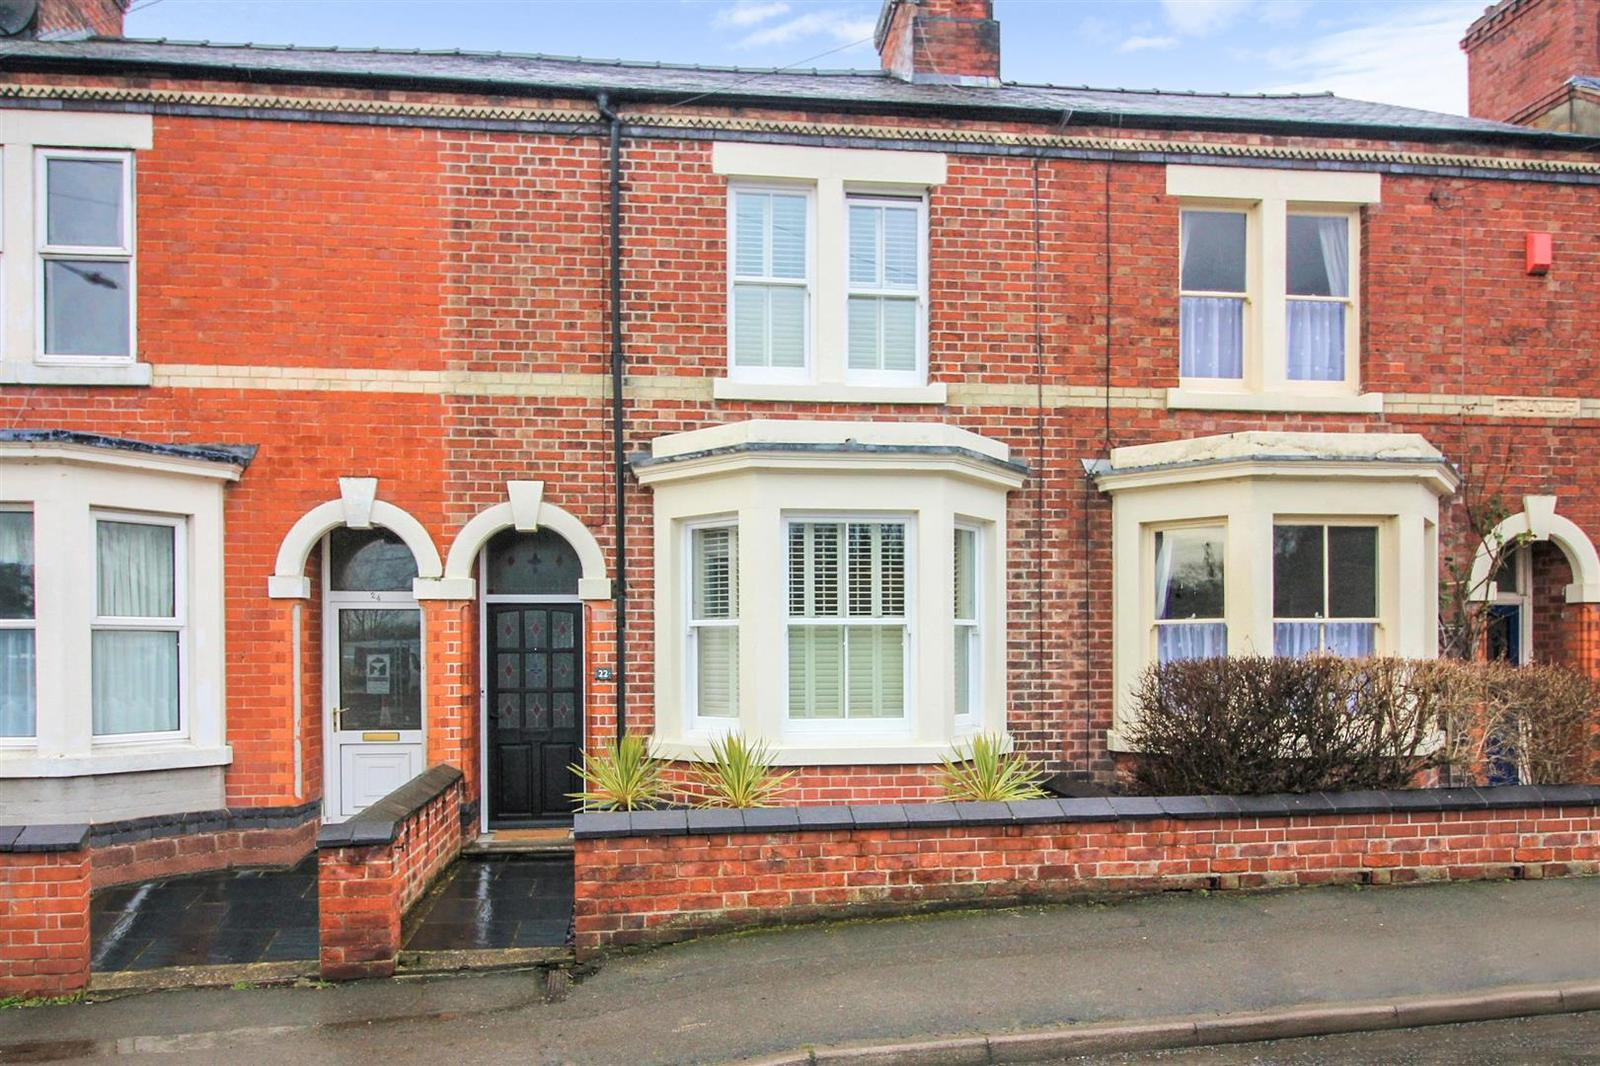 3 Bedrooms Terraced House for sale in Ashby Road, Melbourne, Derbyshire